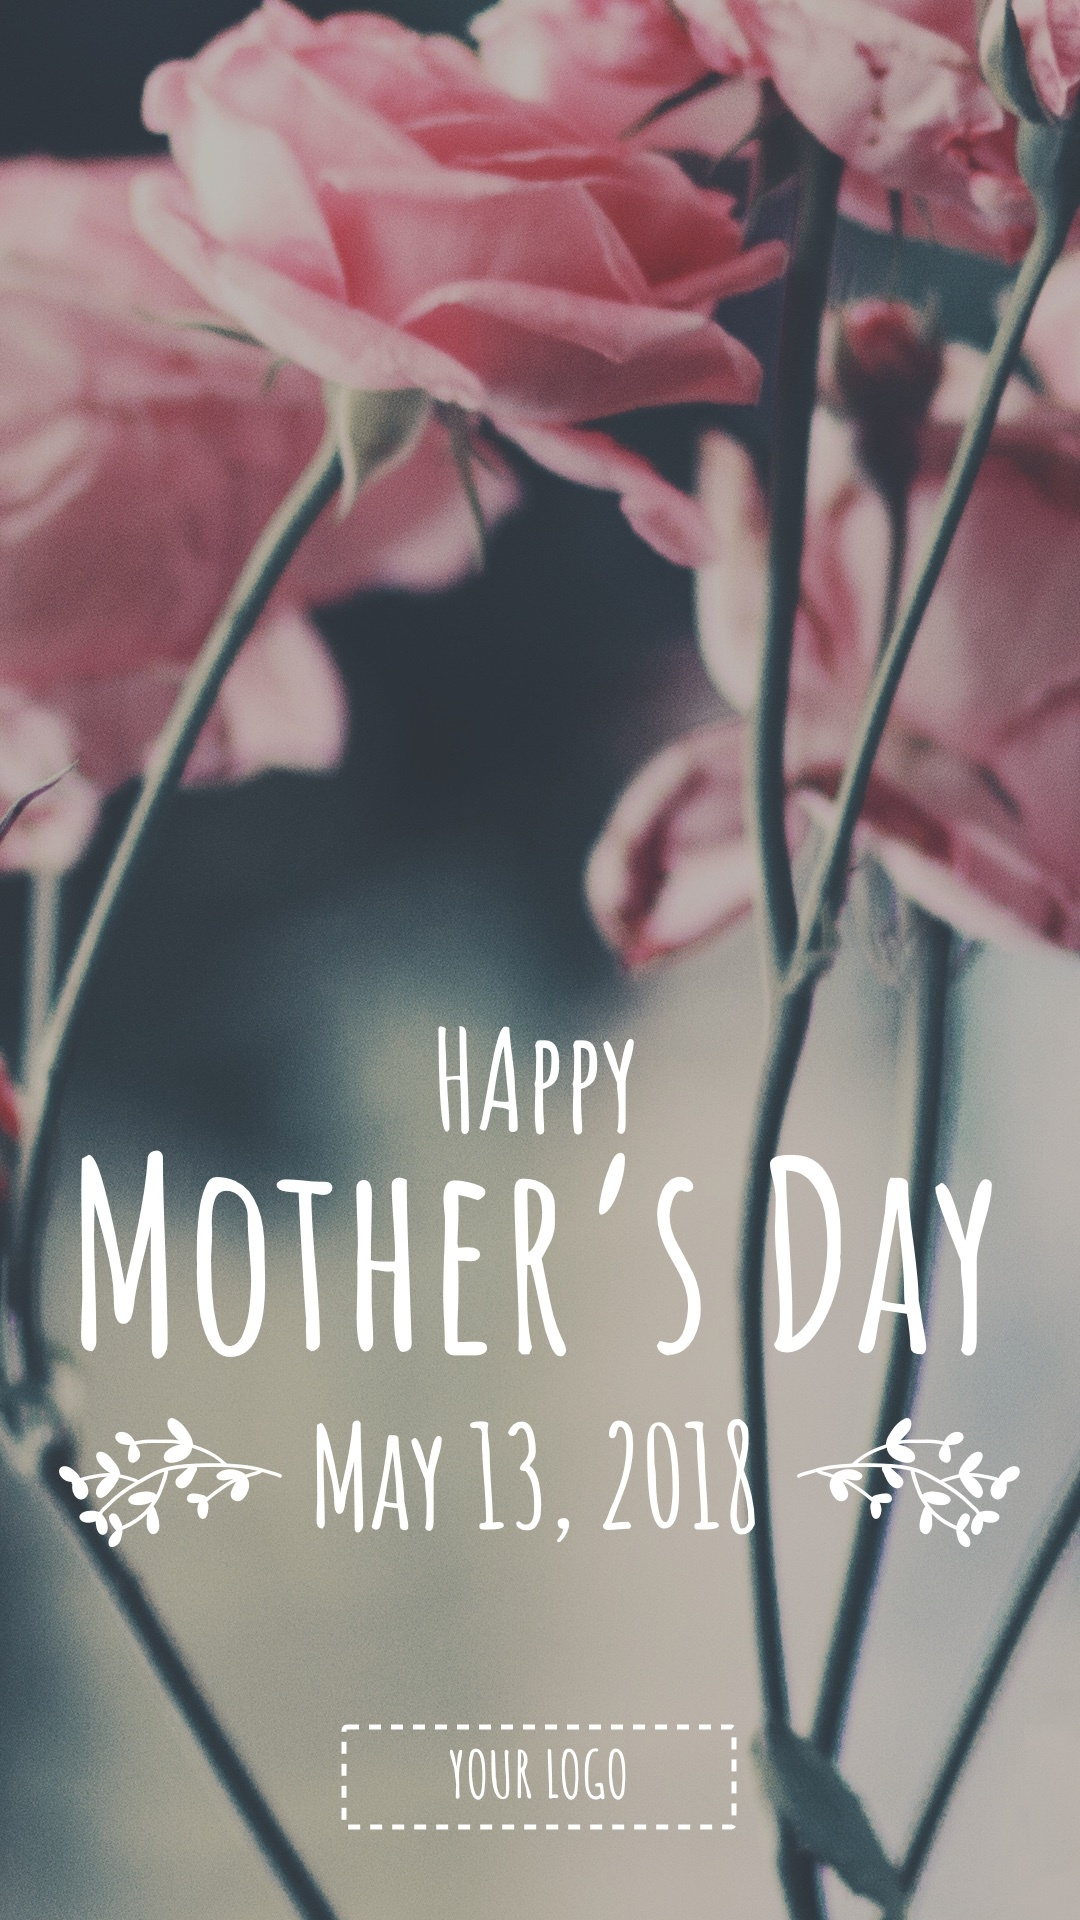 mother's day background image